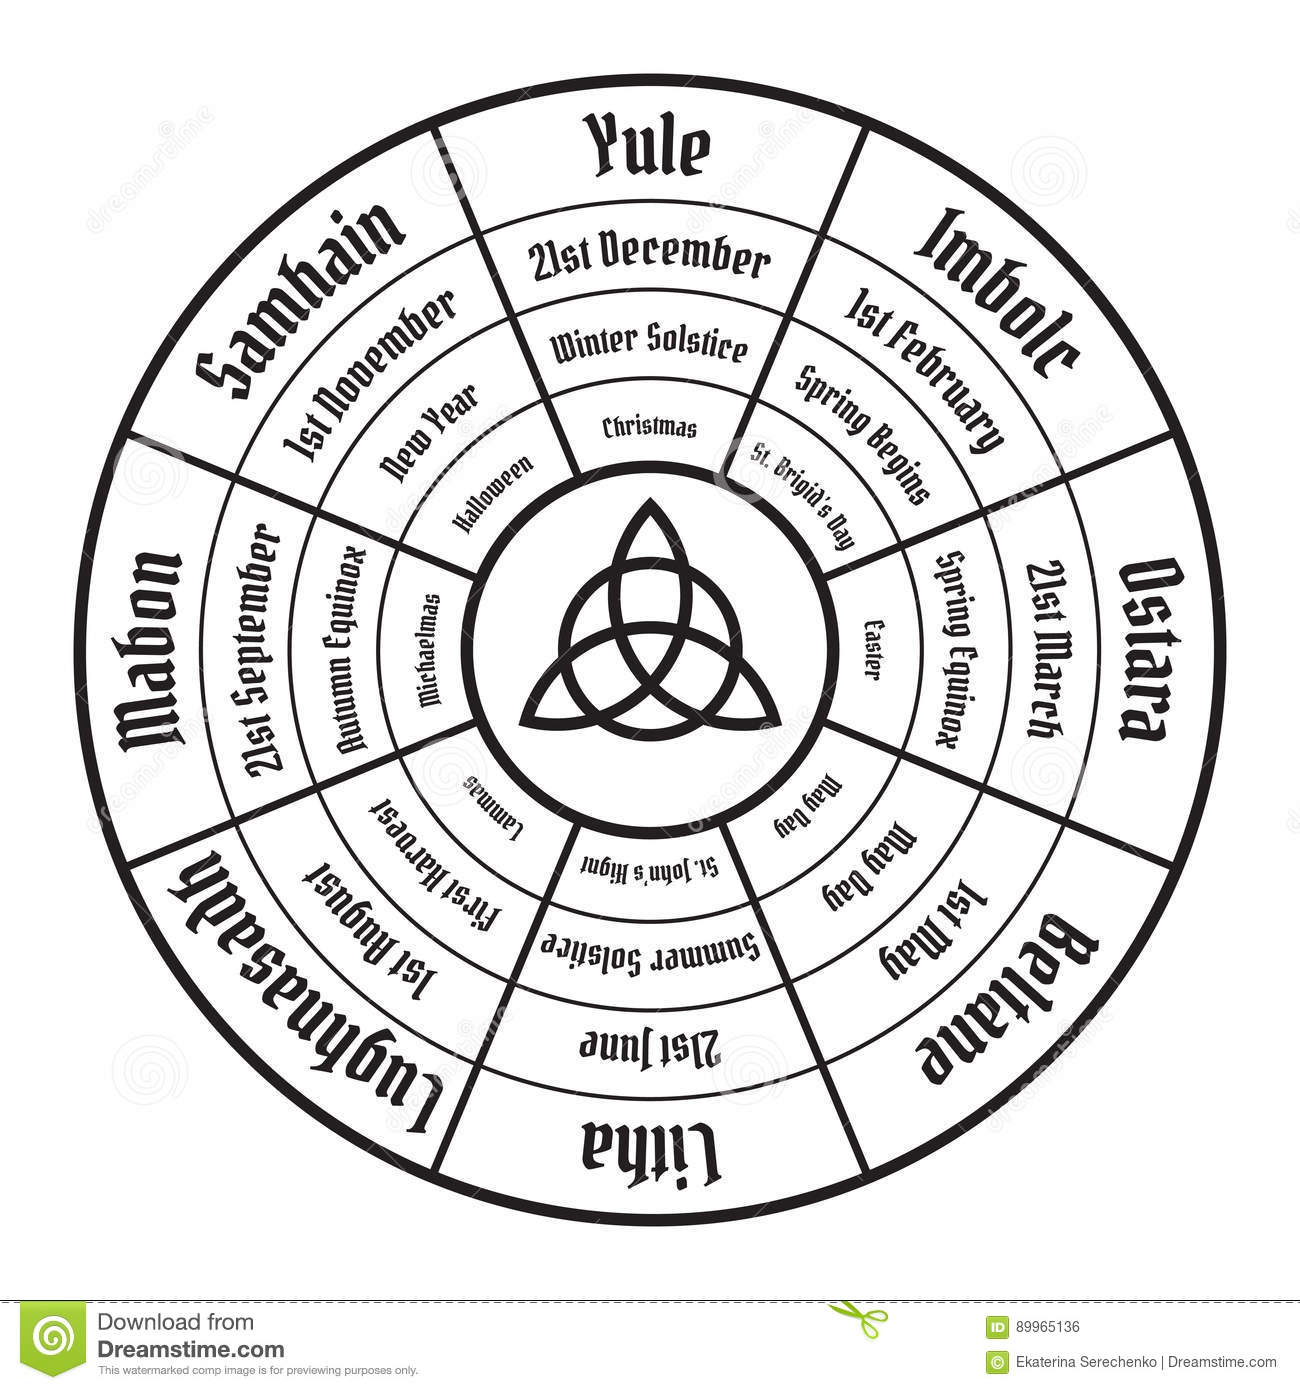 Wheel of the year diagram. Wiccan annual cycle